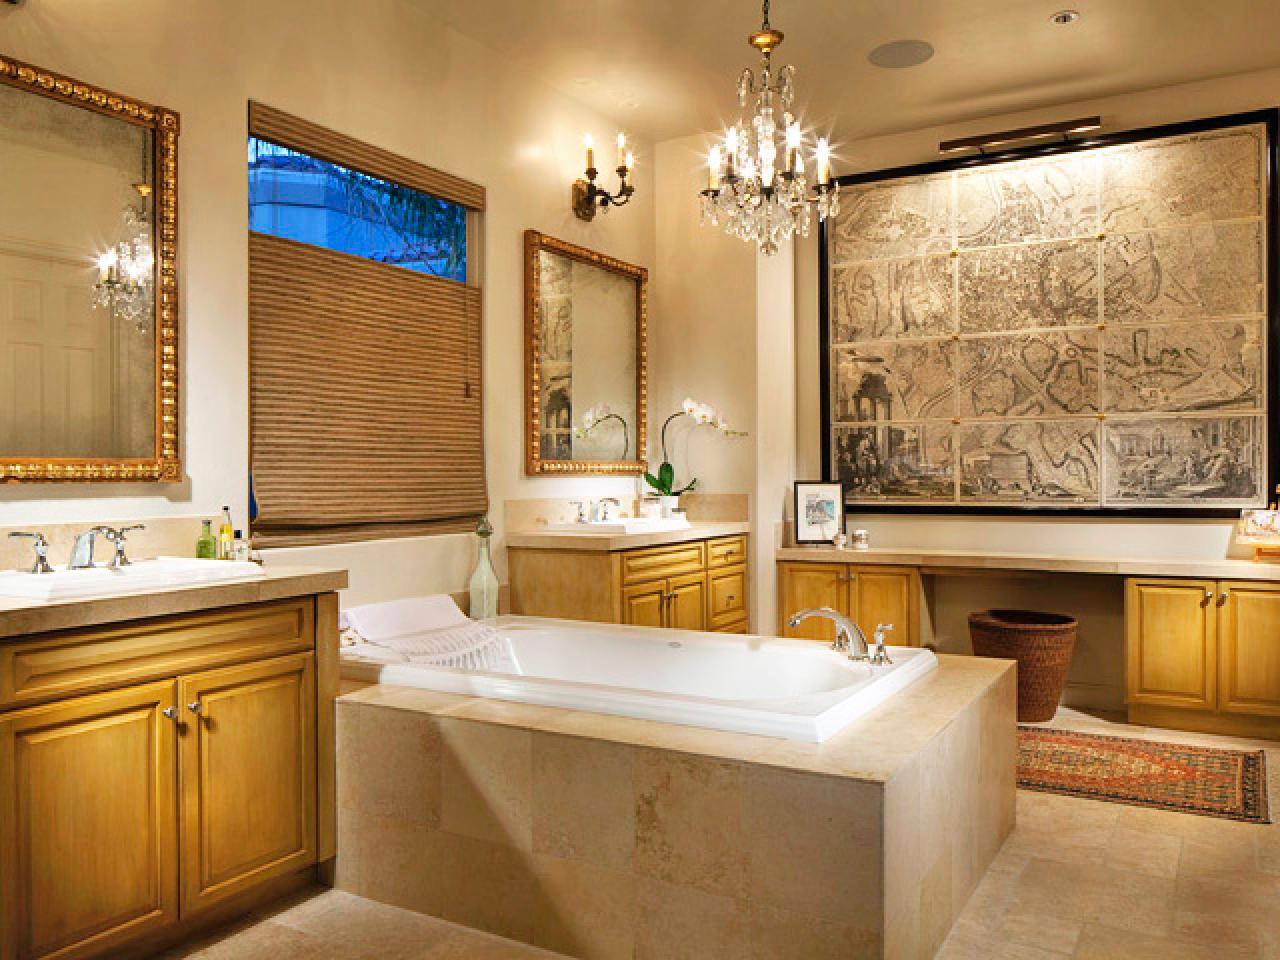 20 Luxurious Bathrooms with Elegant Chandelier Lighting on Small:e_D8Ihxdoce= Restroom Ideas  id=27781